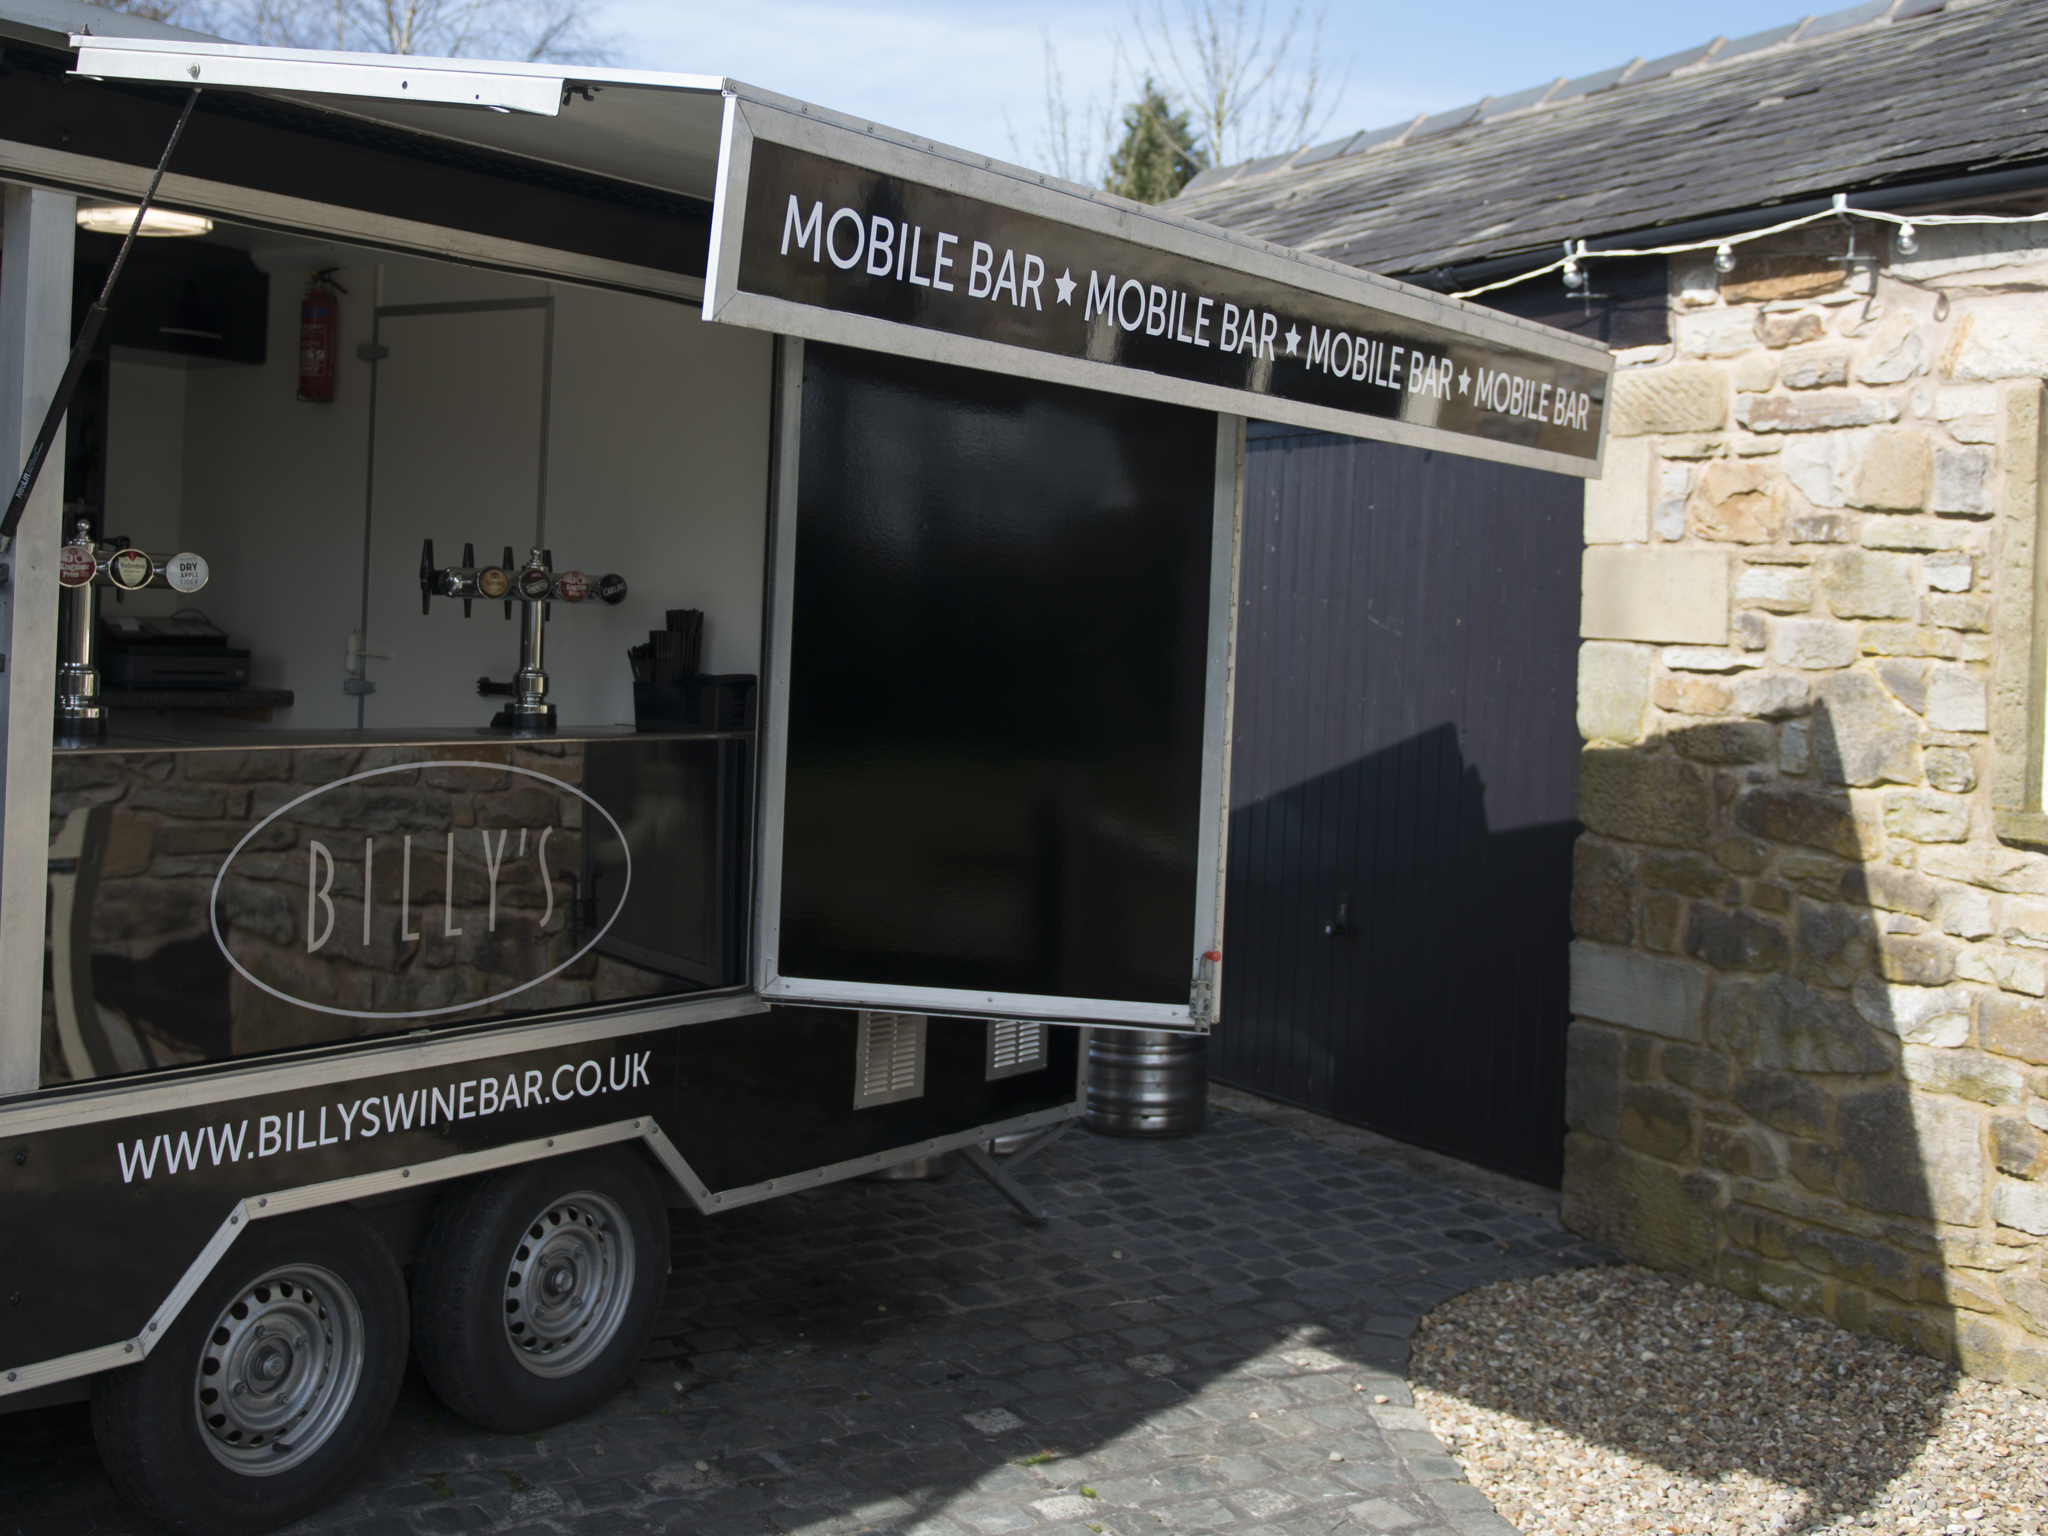 Billy's mobile bar.